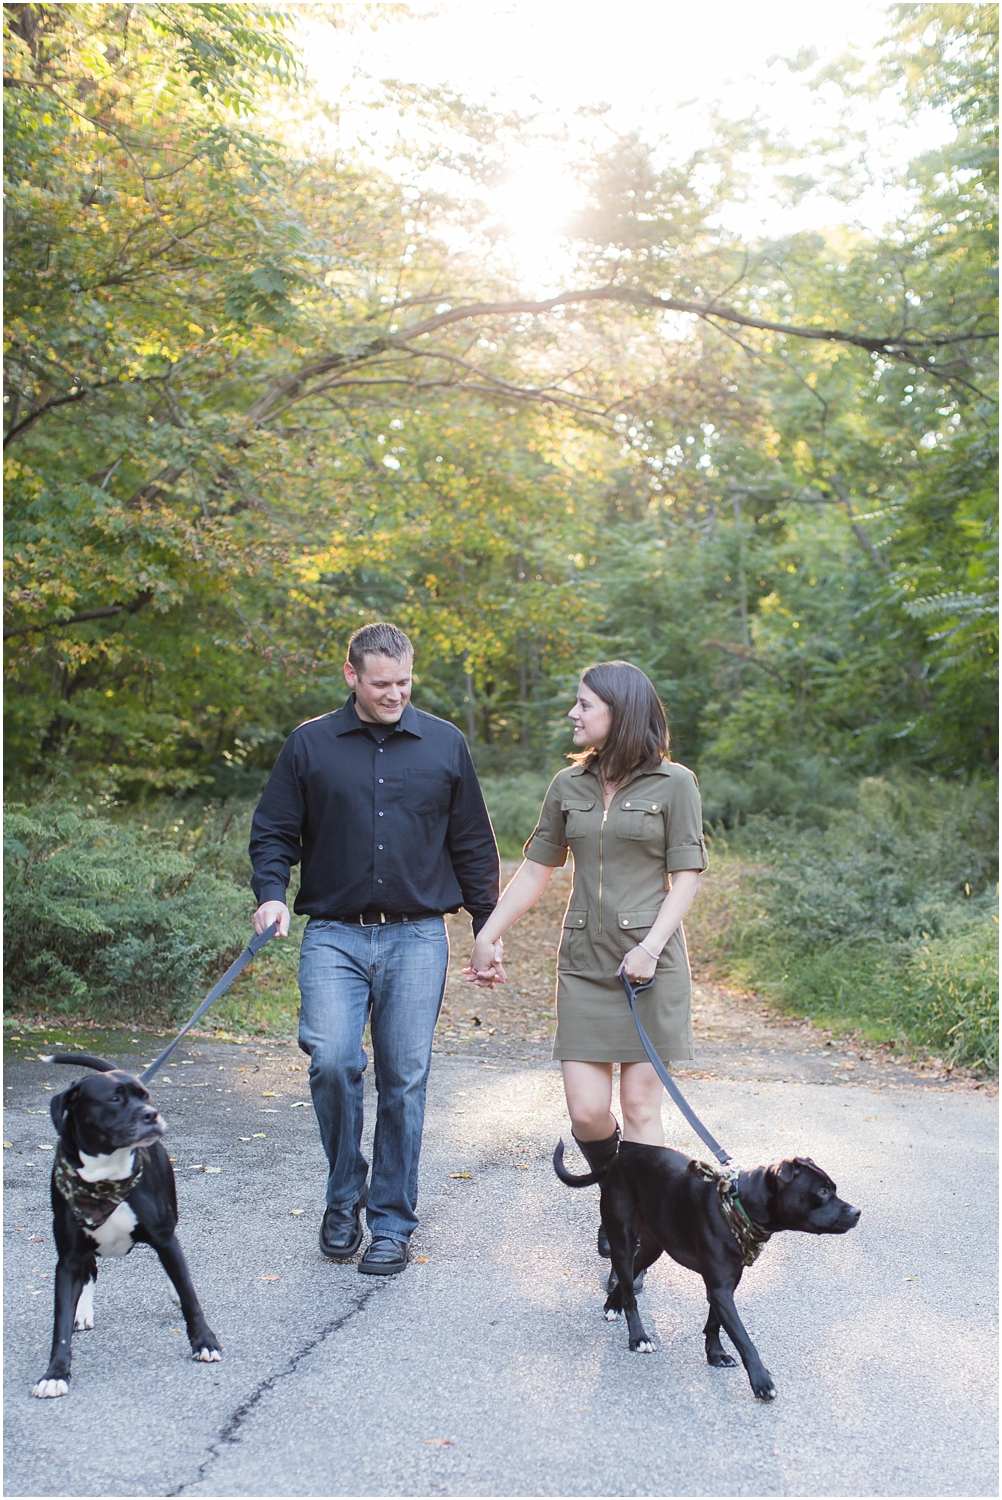 Fall engagement session in new jersey with dogs